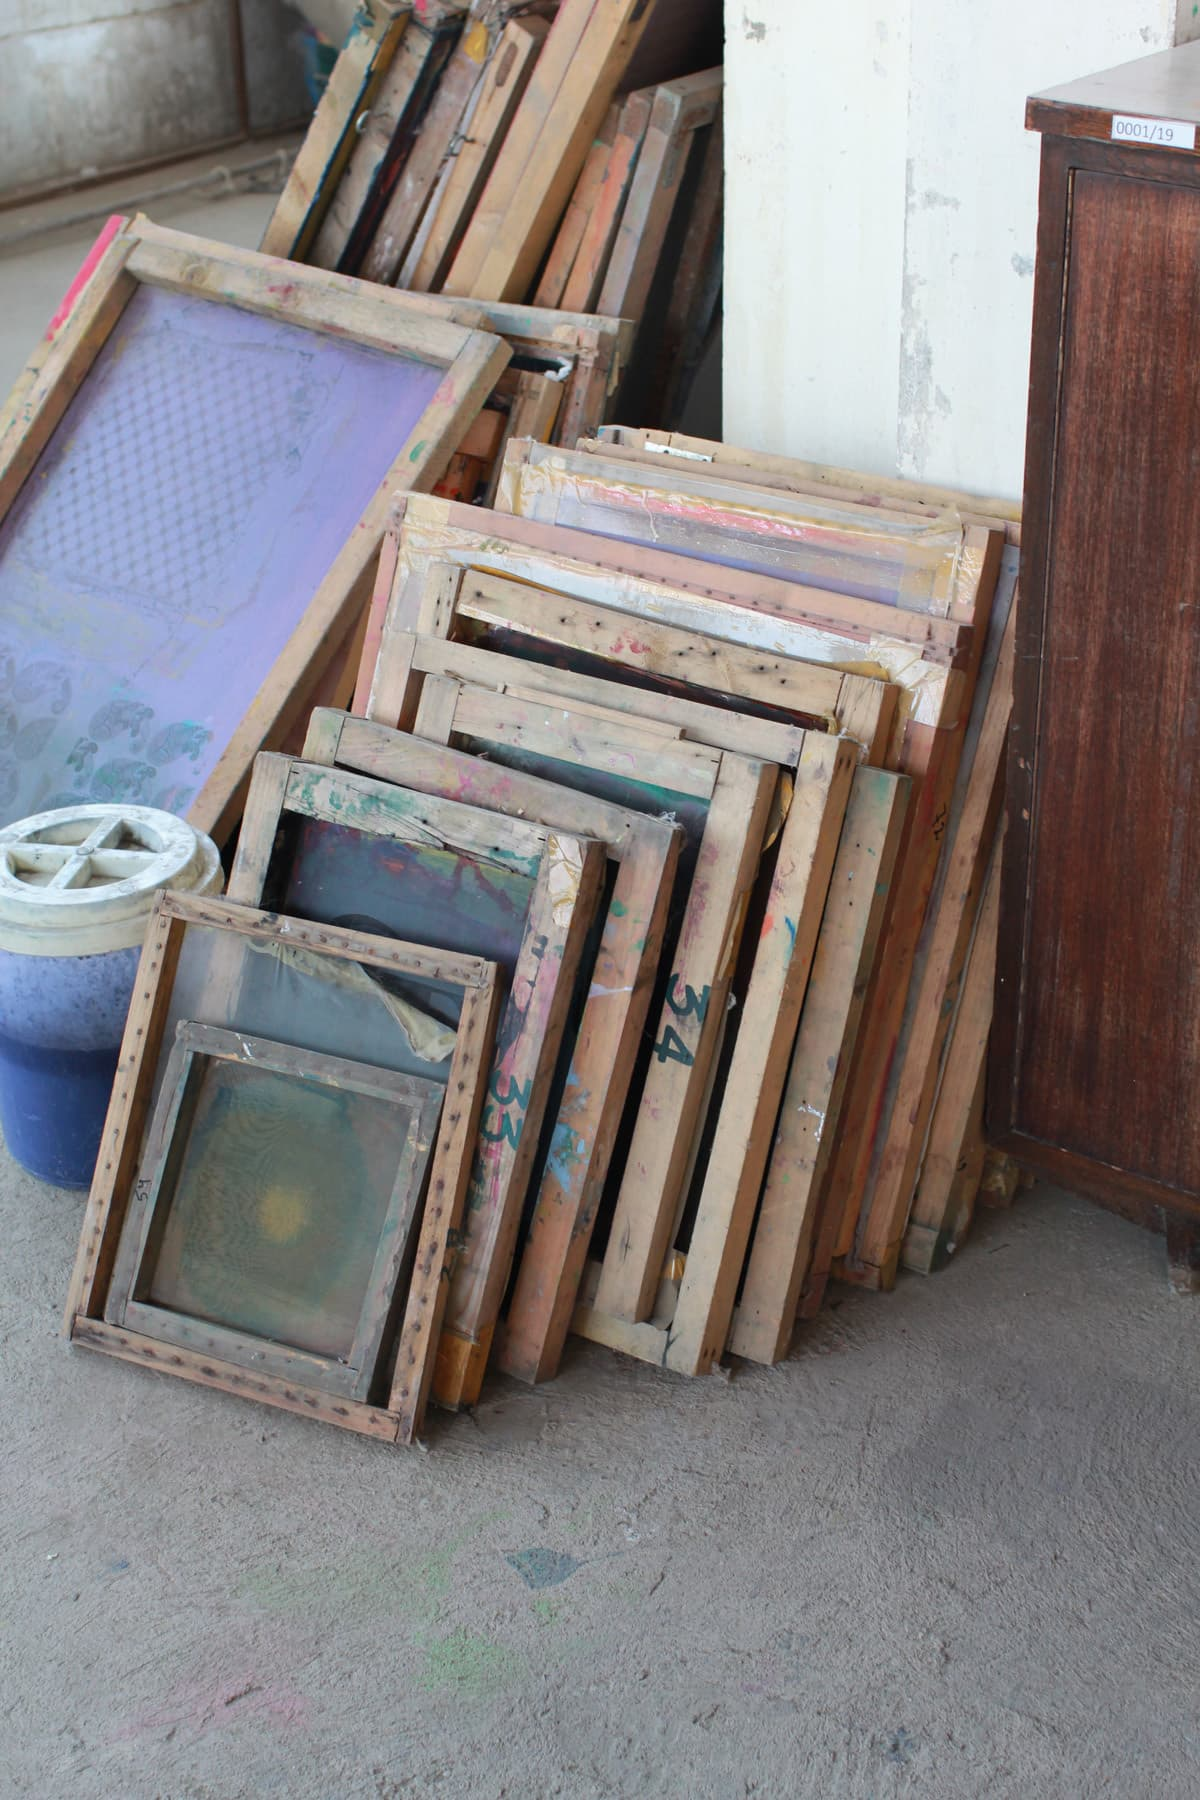 Screens used for changing dyes.